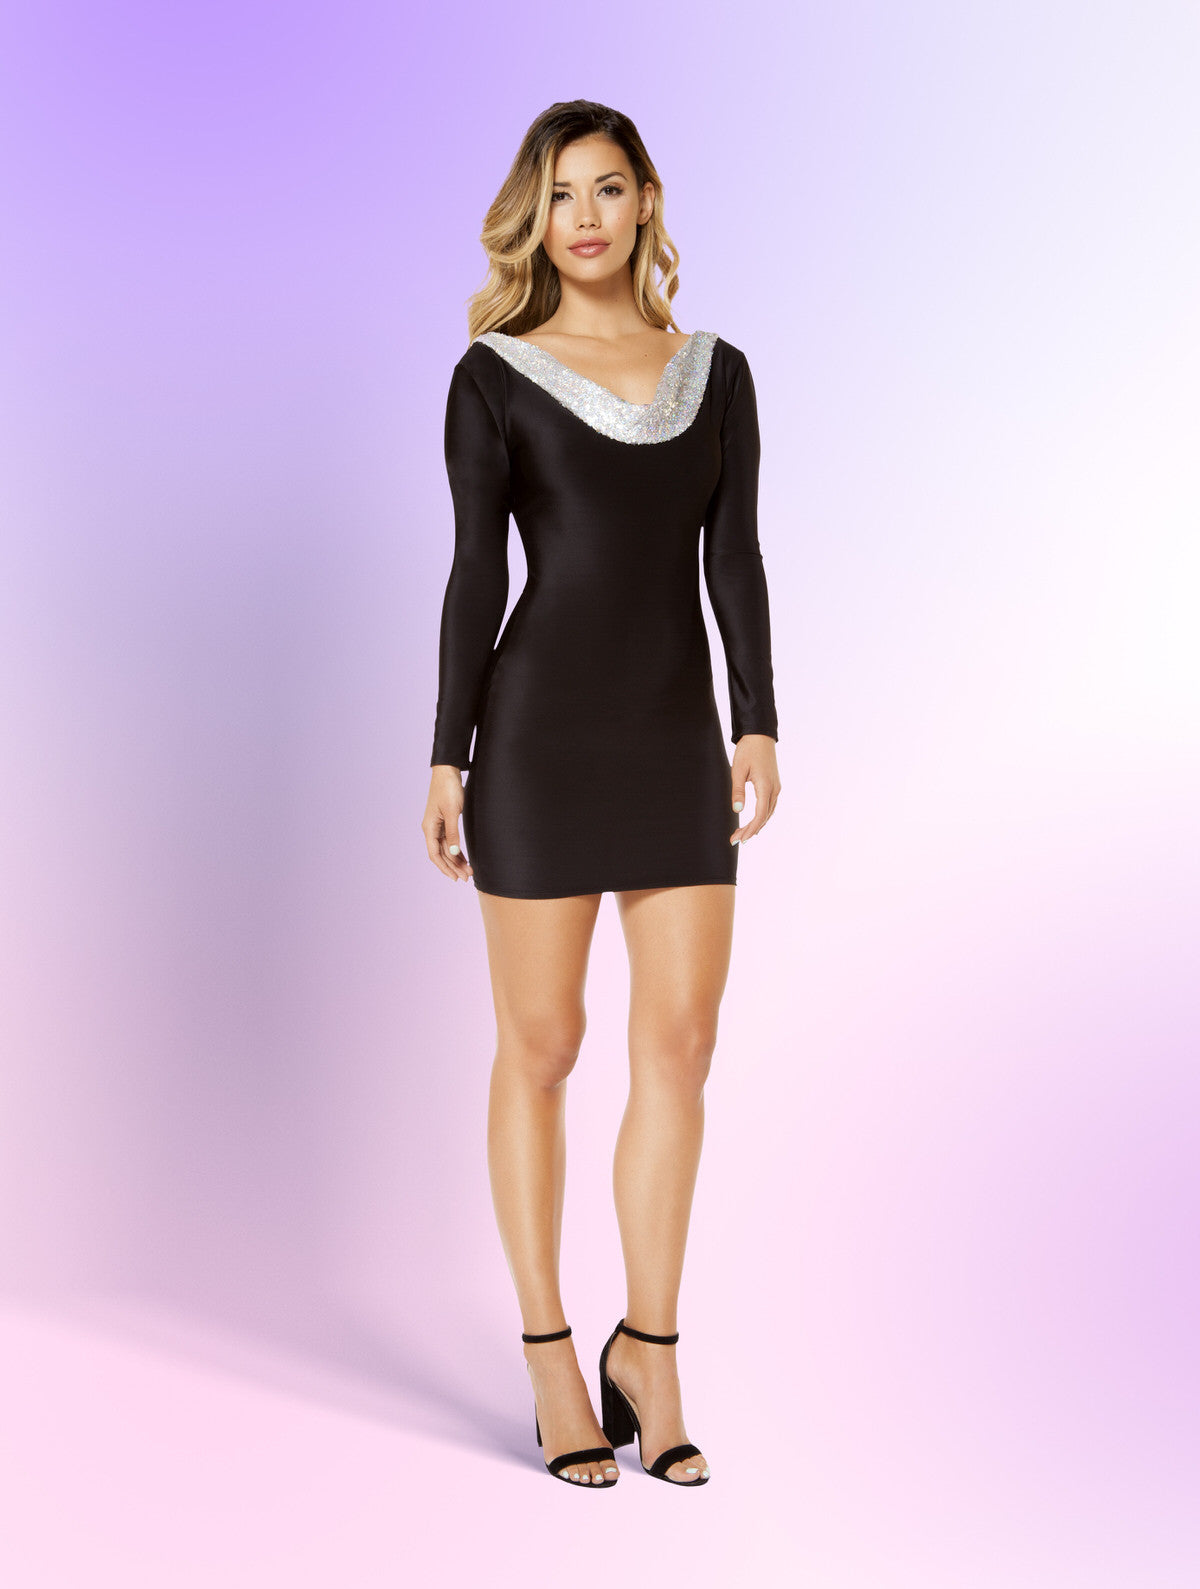 3367 - Bodycon Dress with Open Back Design ${description} | Roma Costume and Roma Confidential wholesale manufacturer of Women Apparel bulk world wide wholesale and world wide drop ship services for Adult Halloween Costumes, Sexy and Elegant Lingerie, Rave Clothing, Club wear, and Christmas Costumes. Mini Dresses, Roma Costume, Inc., Roma Costume, Roma Confidential, Wholesale clothing, drop ship, drop ship service, Wholesale Lingerie, Wholesale Adult Halloween Costumes, Rave Clothing, EDM Clothing, Festival Wear, Christmas Costumes, Clubwear, Club wear.